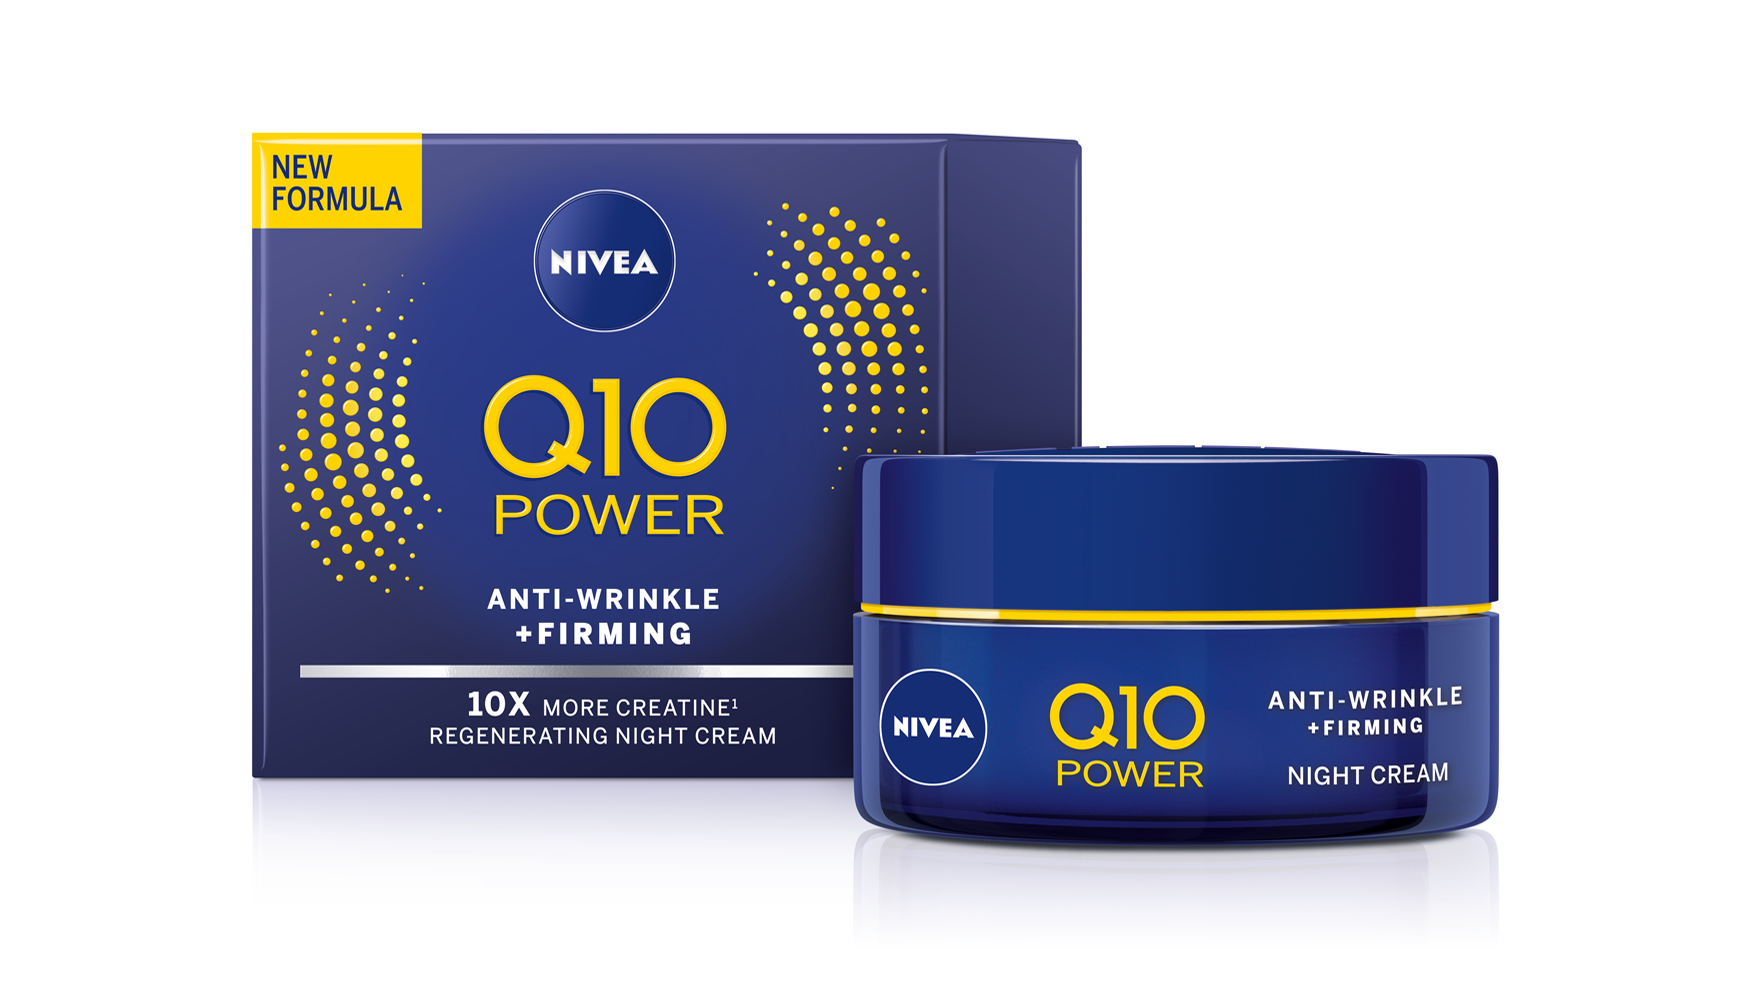 NIVEA Q10 POWER Night Cream